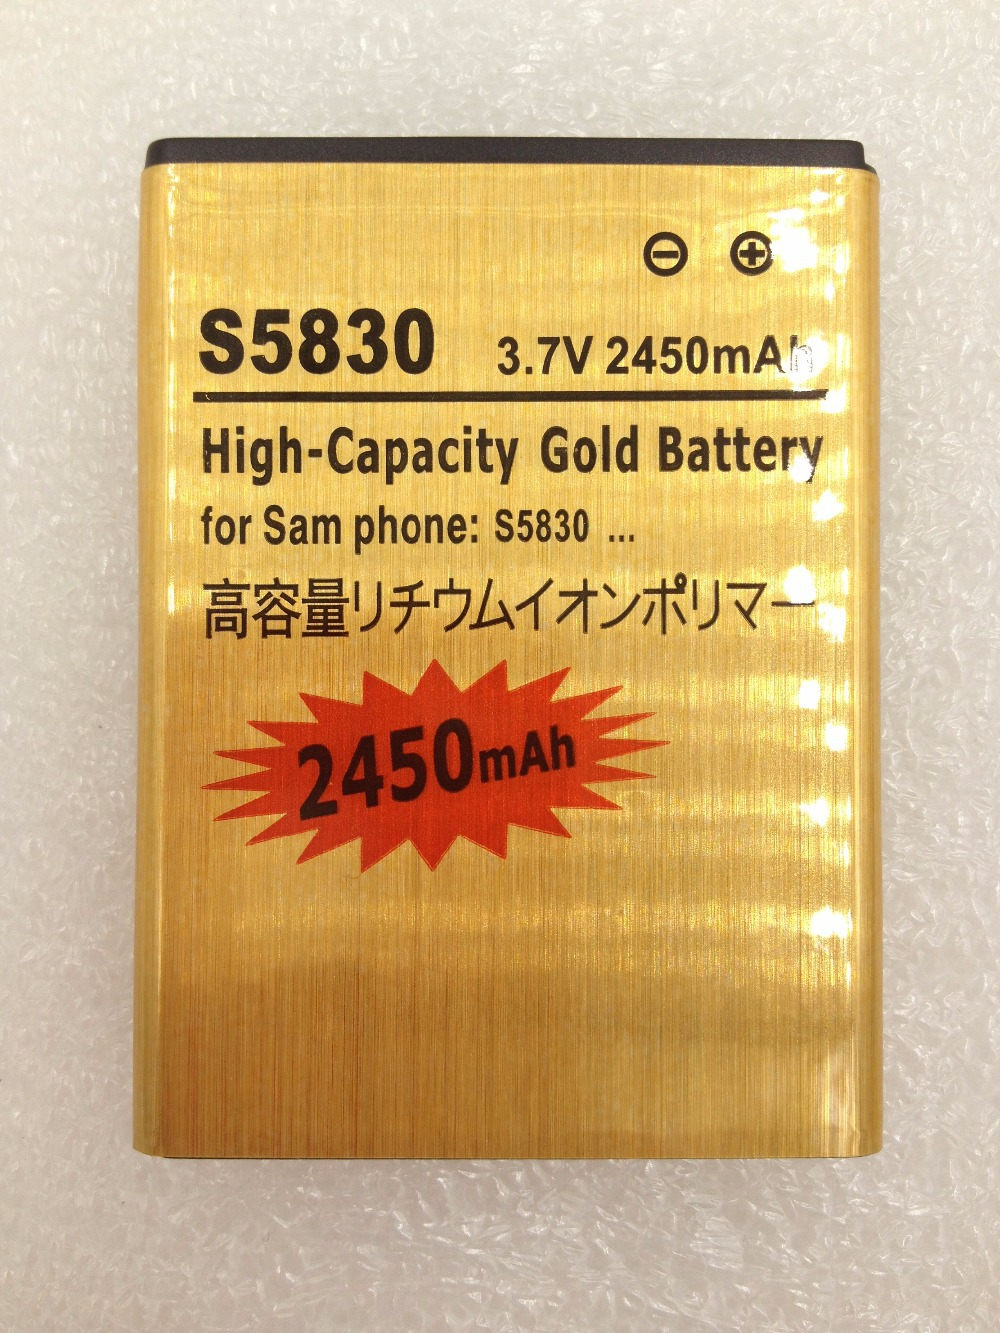 2450mAh High Capacity Gold Battery For Samsung Galaxy Ace S5660 S5670 S6500 S7500 I569 I579 S5838 S5830 Phone Battery(China (Mainland))